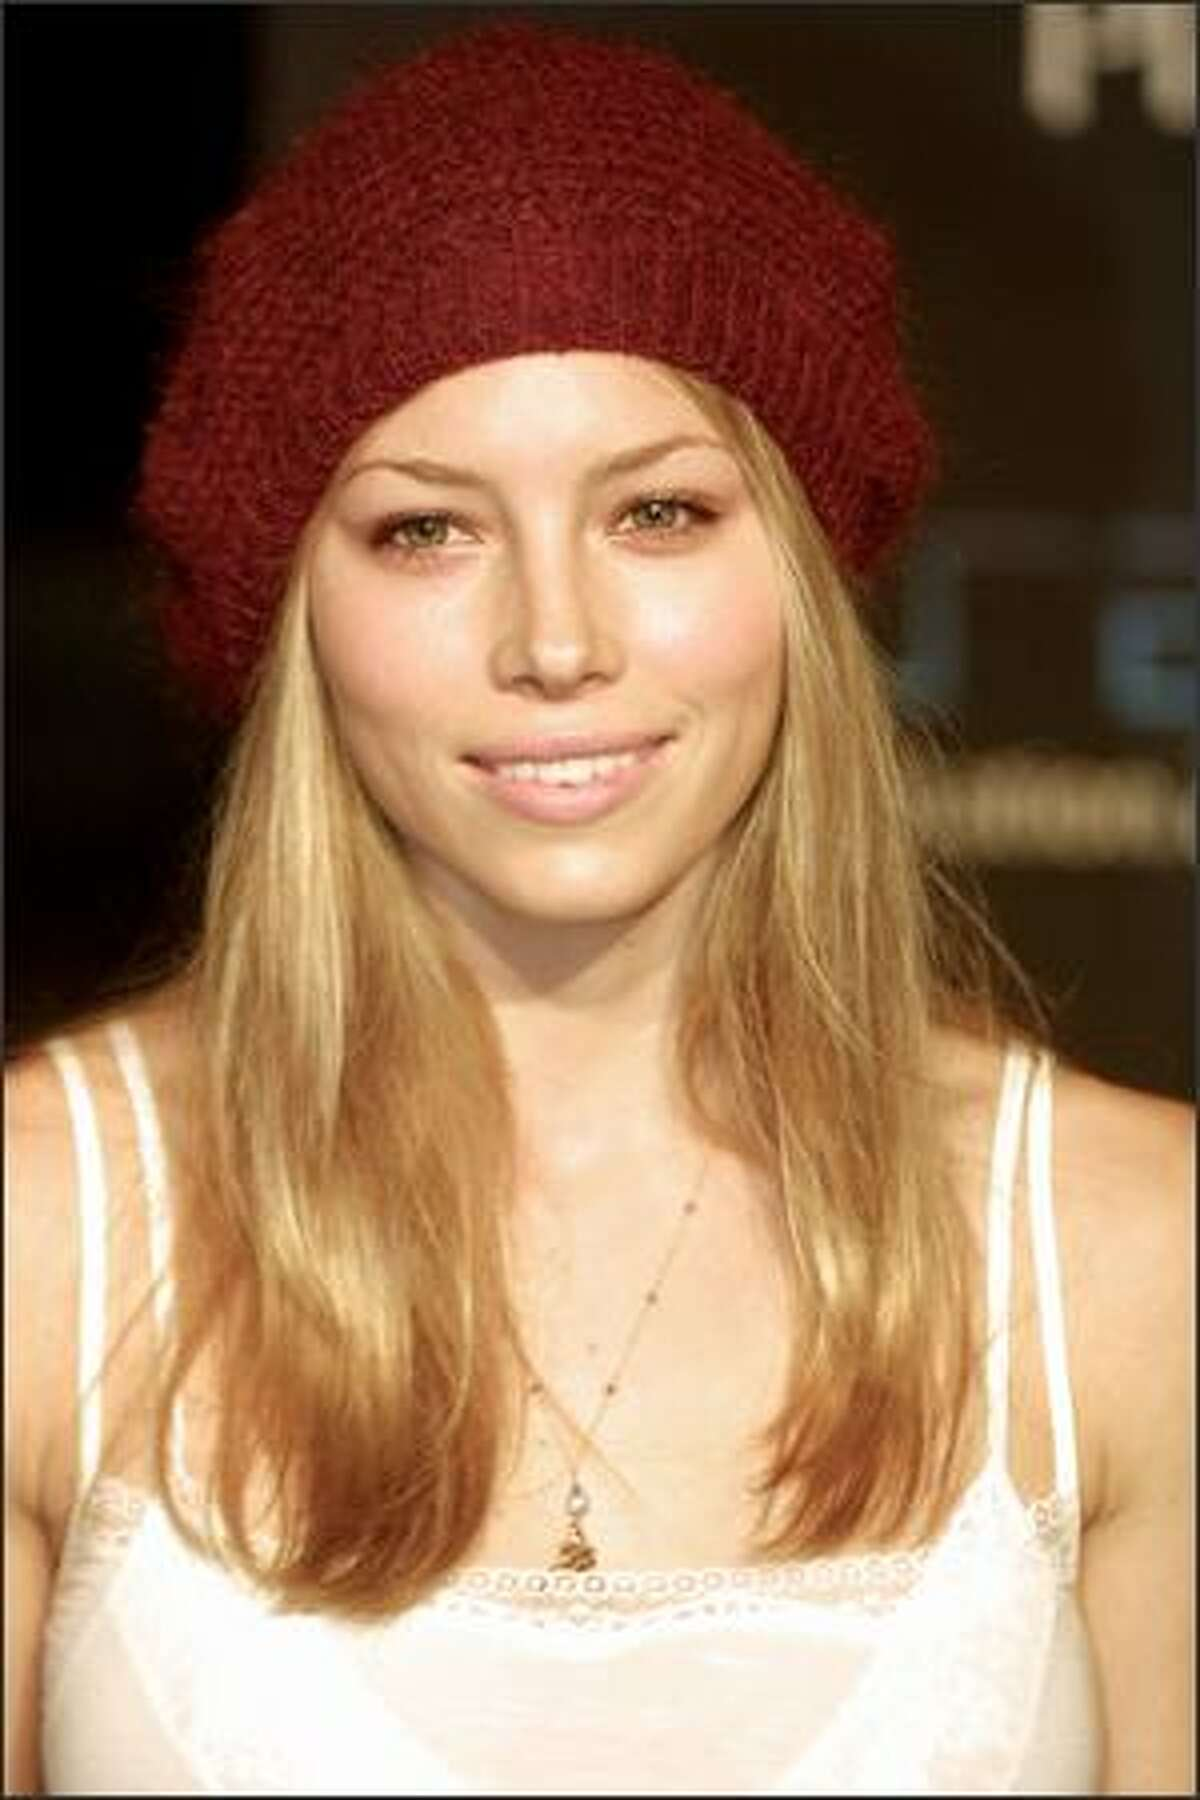 Jessica Biel attends the Playstation 2 One Year Anniversary Party in Los Angeles, Oct. 18, 2001.